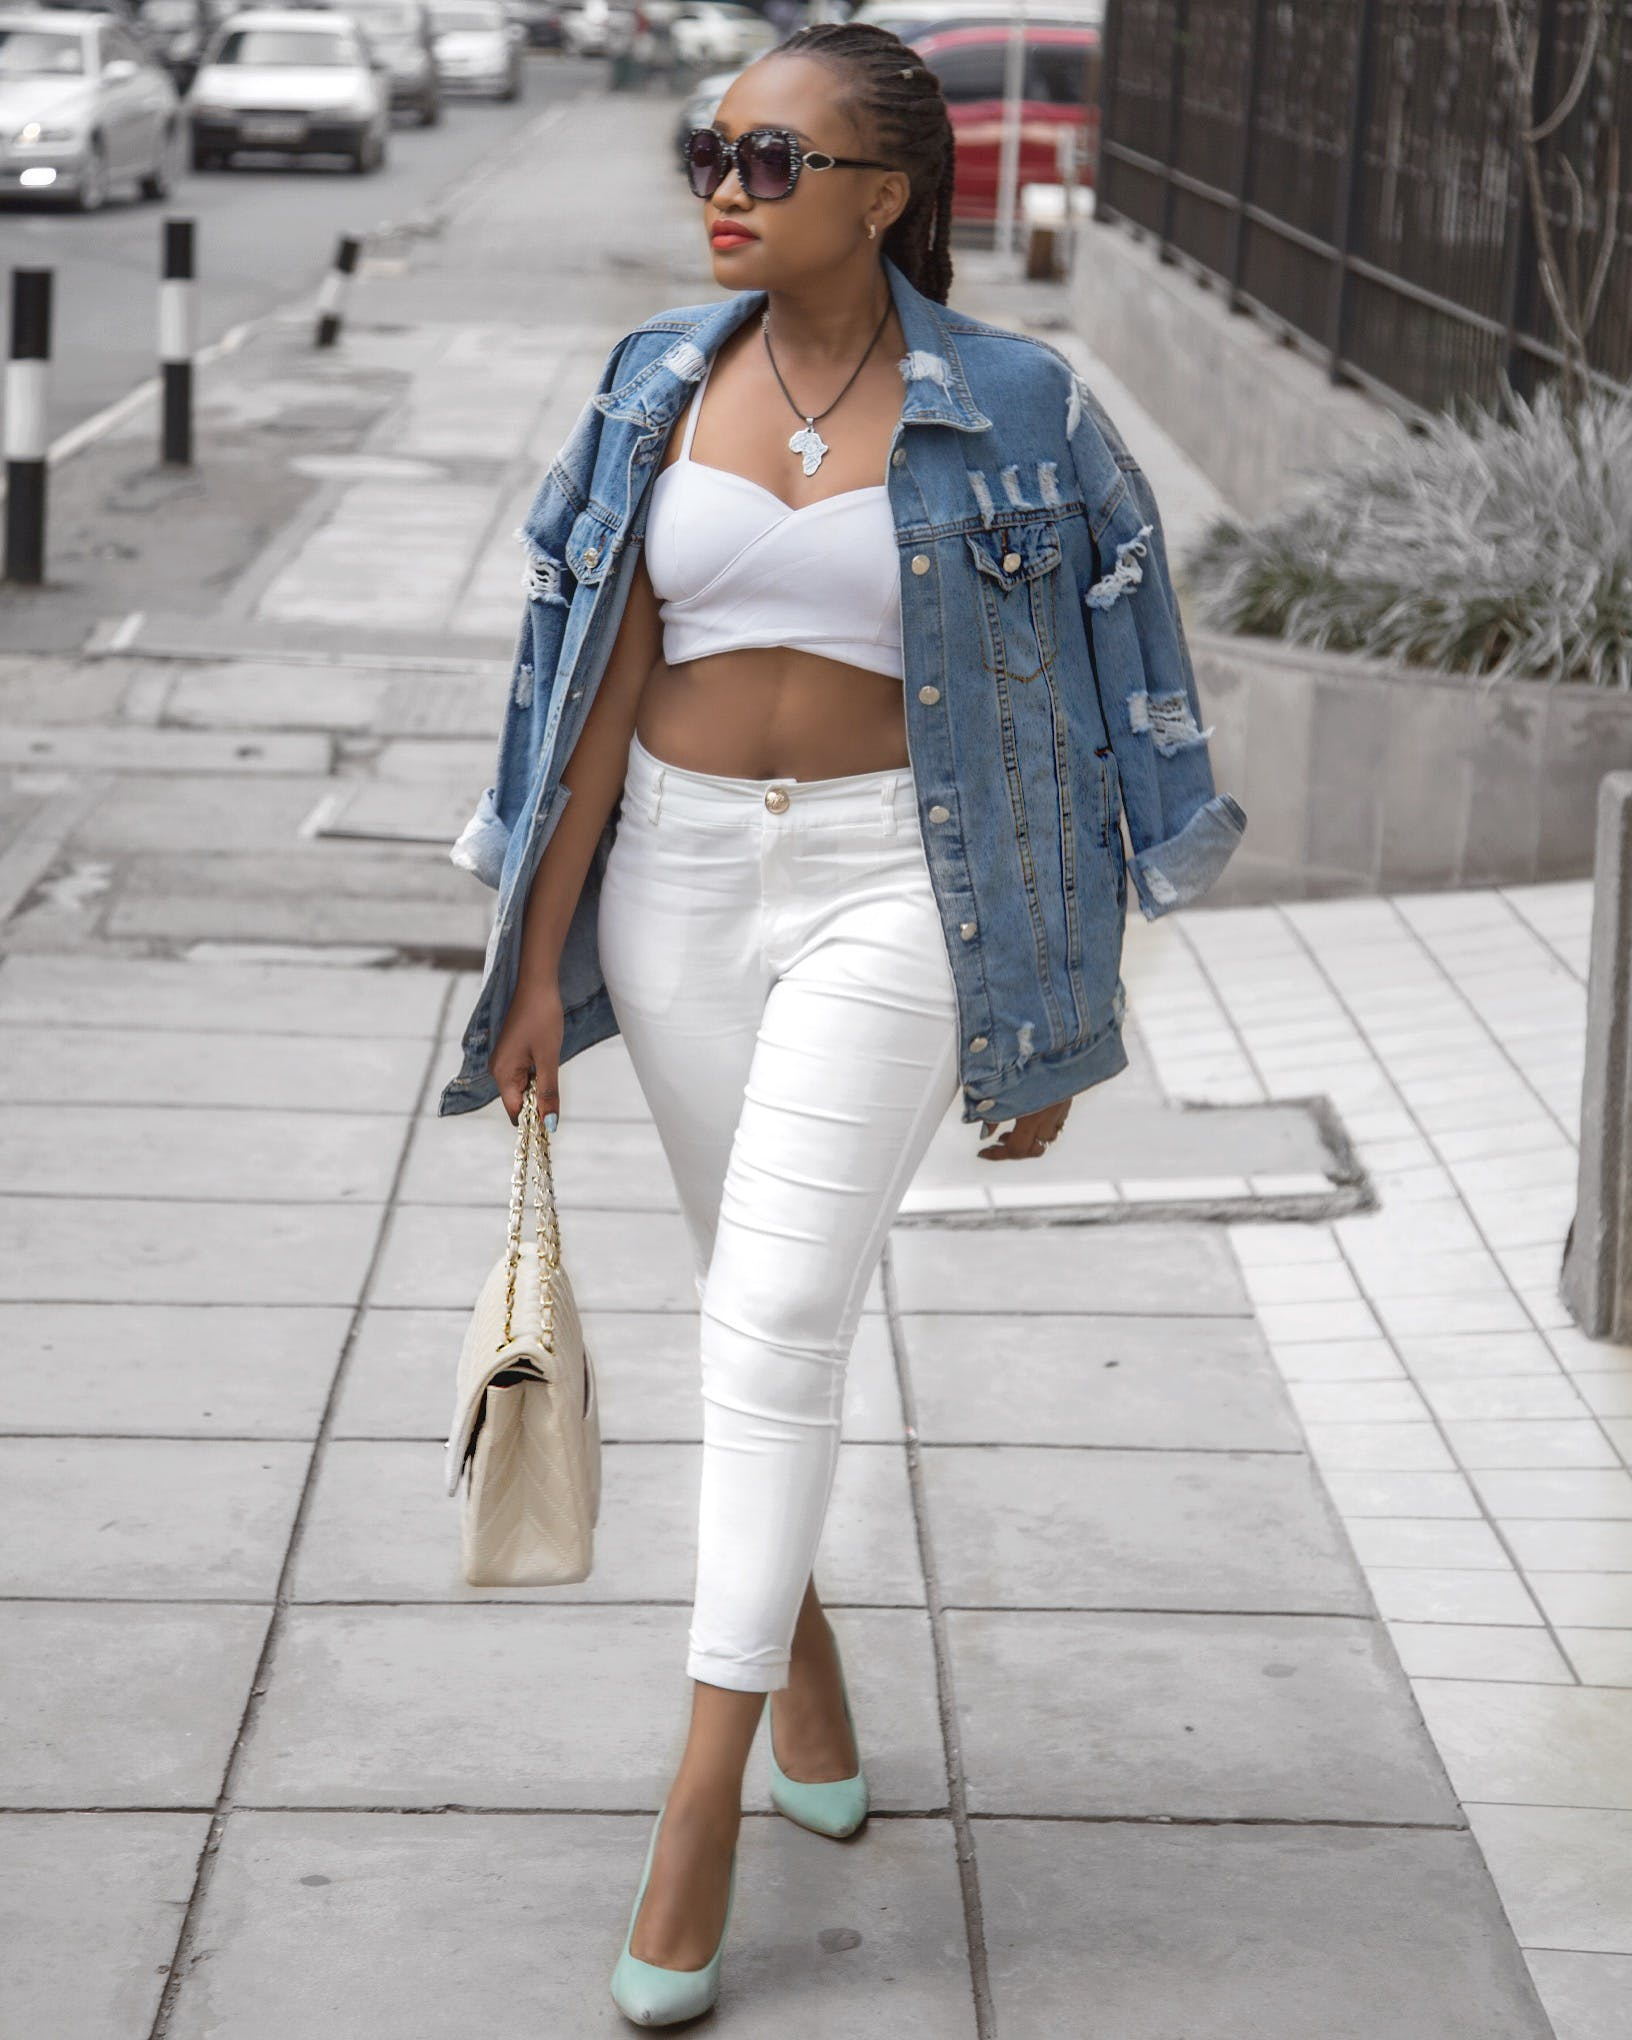 Photo of Woman Wearing White Crop Top and Denim Jacket Walking in Pavement Holding Bag